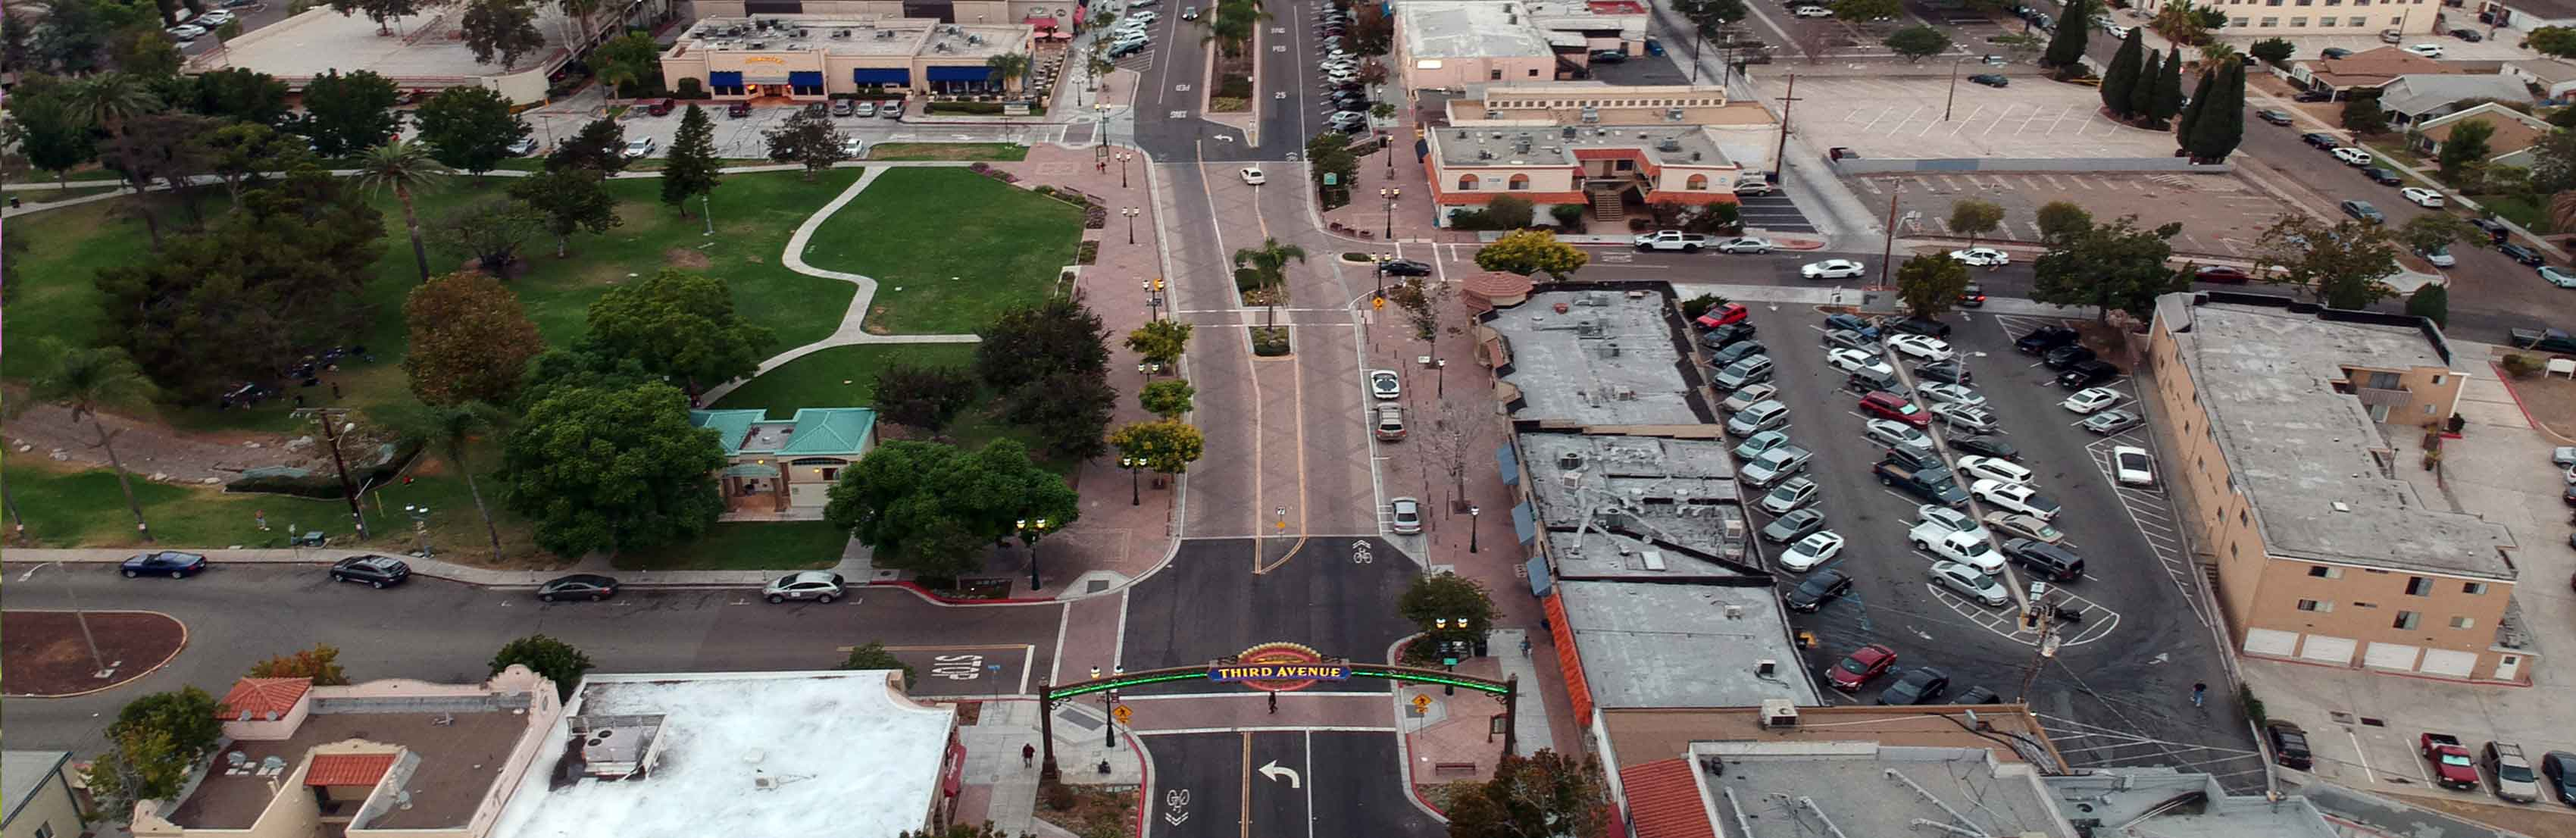 members from tava - picture of the third avenue from above. Drone picture showing the whole street.